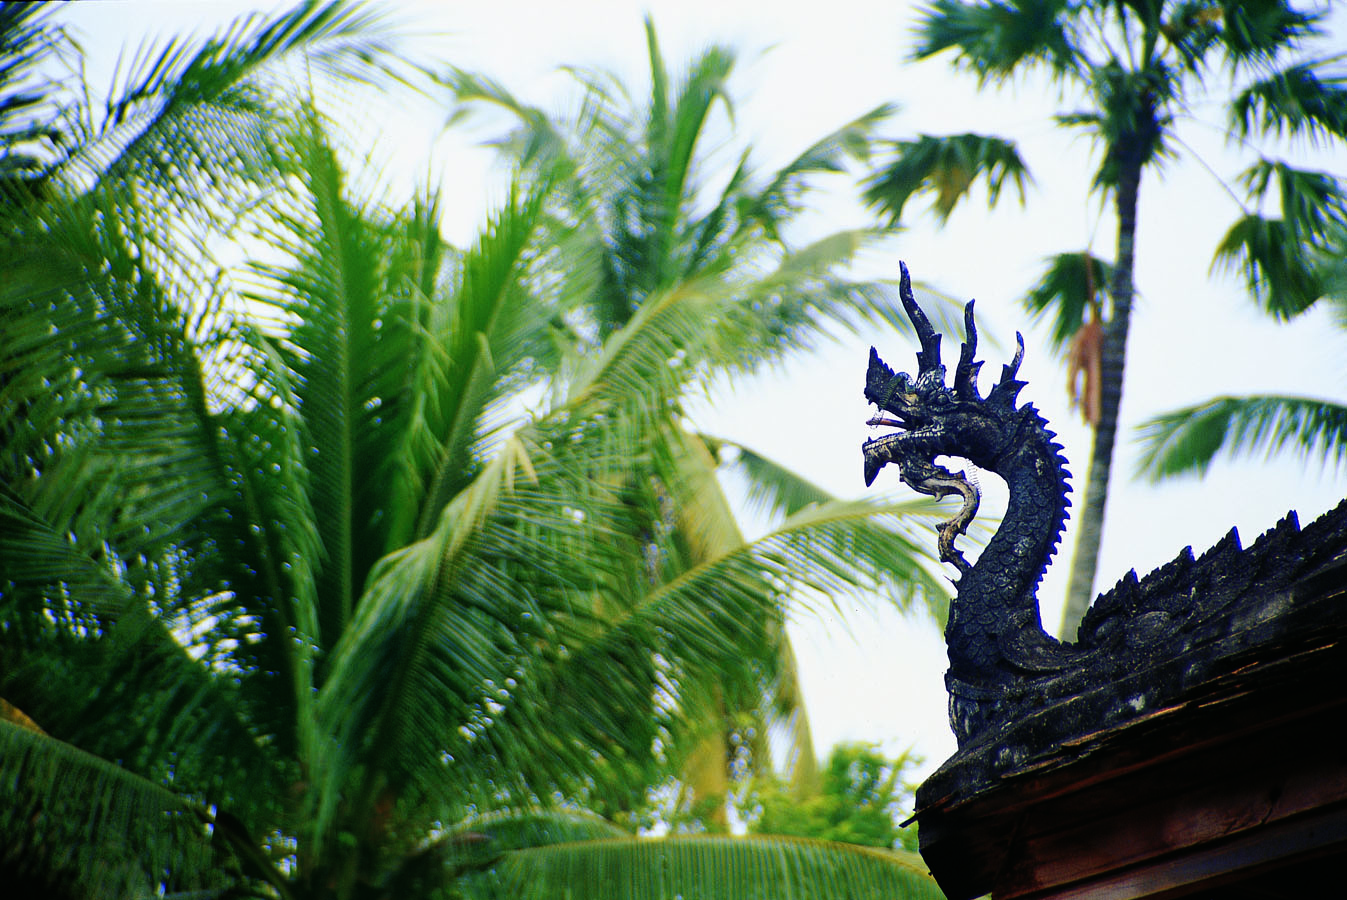 As one travels northward through Laos towards China, the snake-form of Southeast Asia seems to transmute ('grows legs')into the dragon-form of North Asia. The mid-way point is where the beliefs of the community change, having been influenced either by Southeast Asia/India or China. Photo: Vientiane, Laos